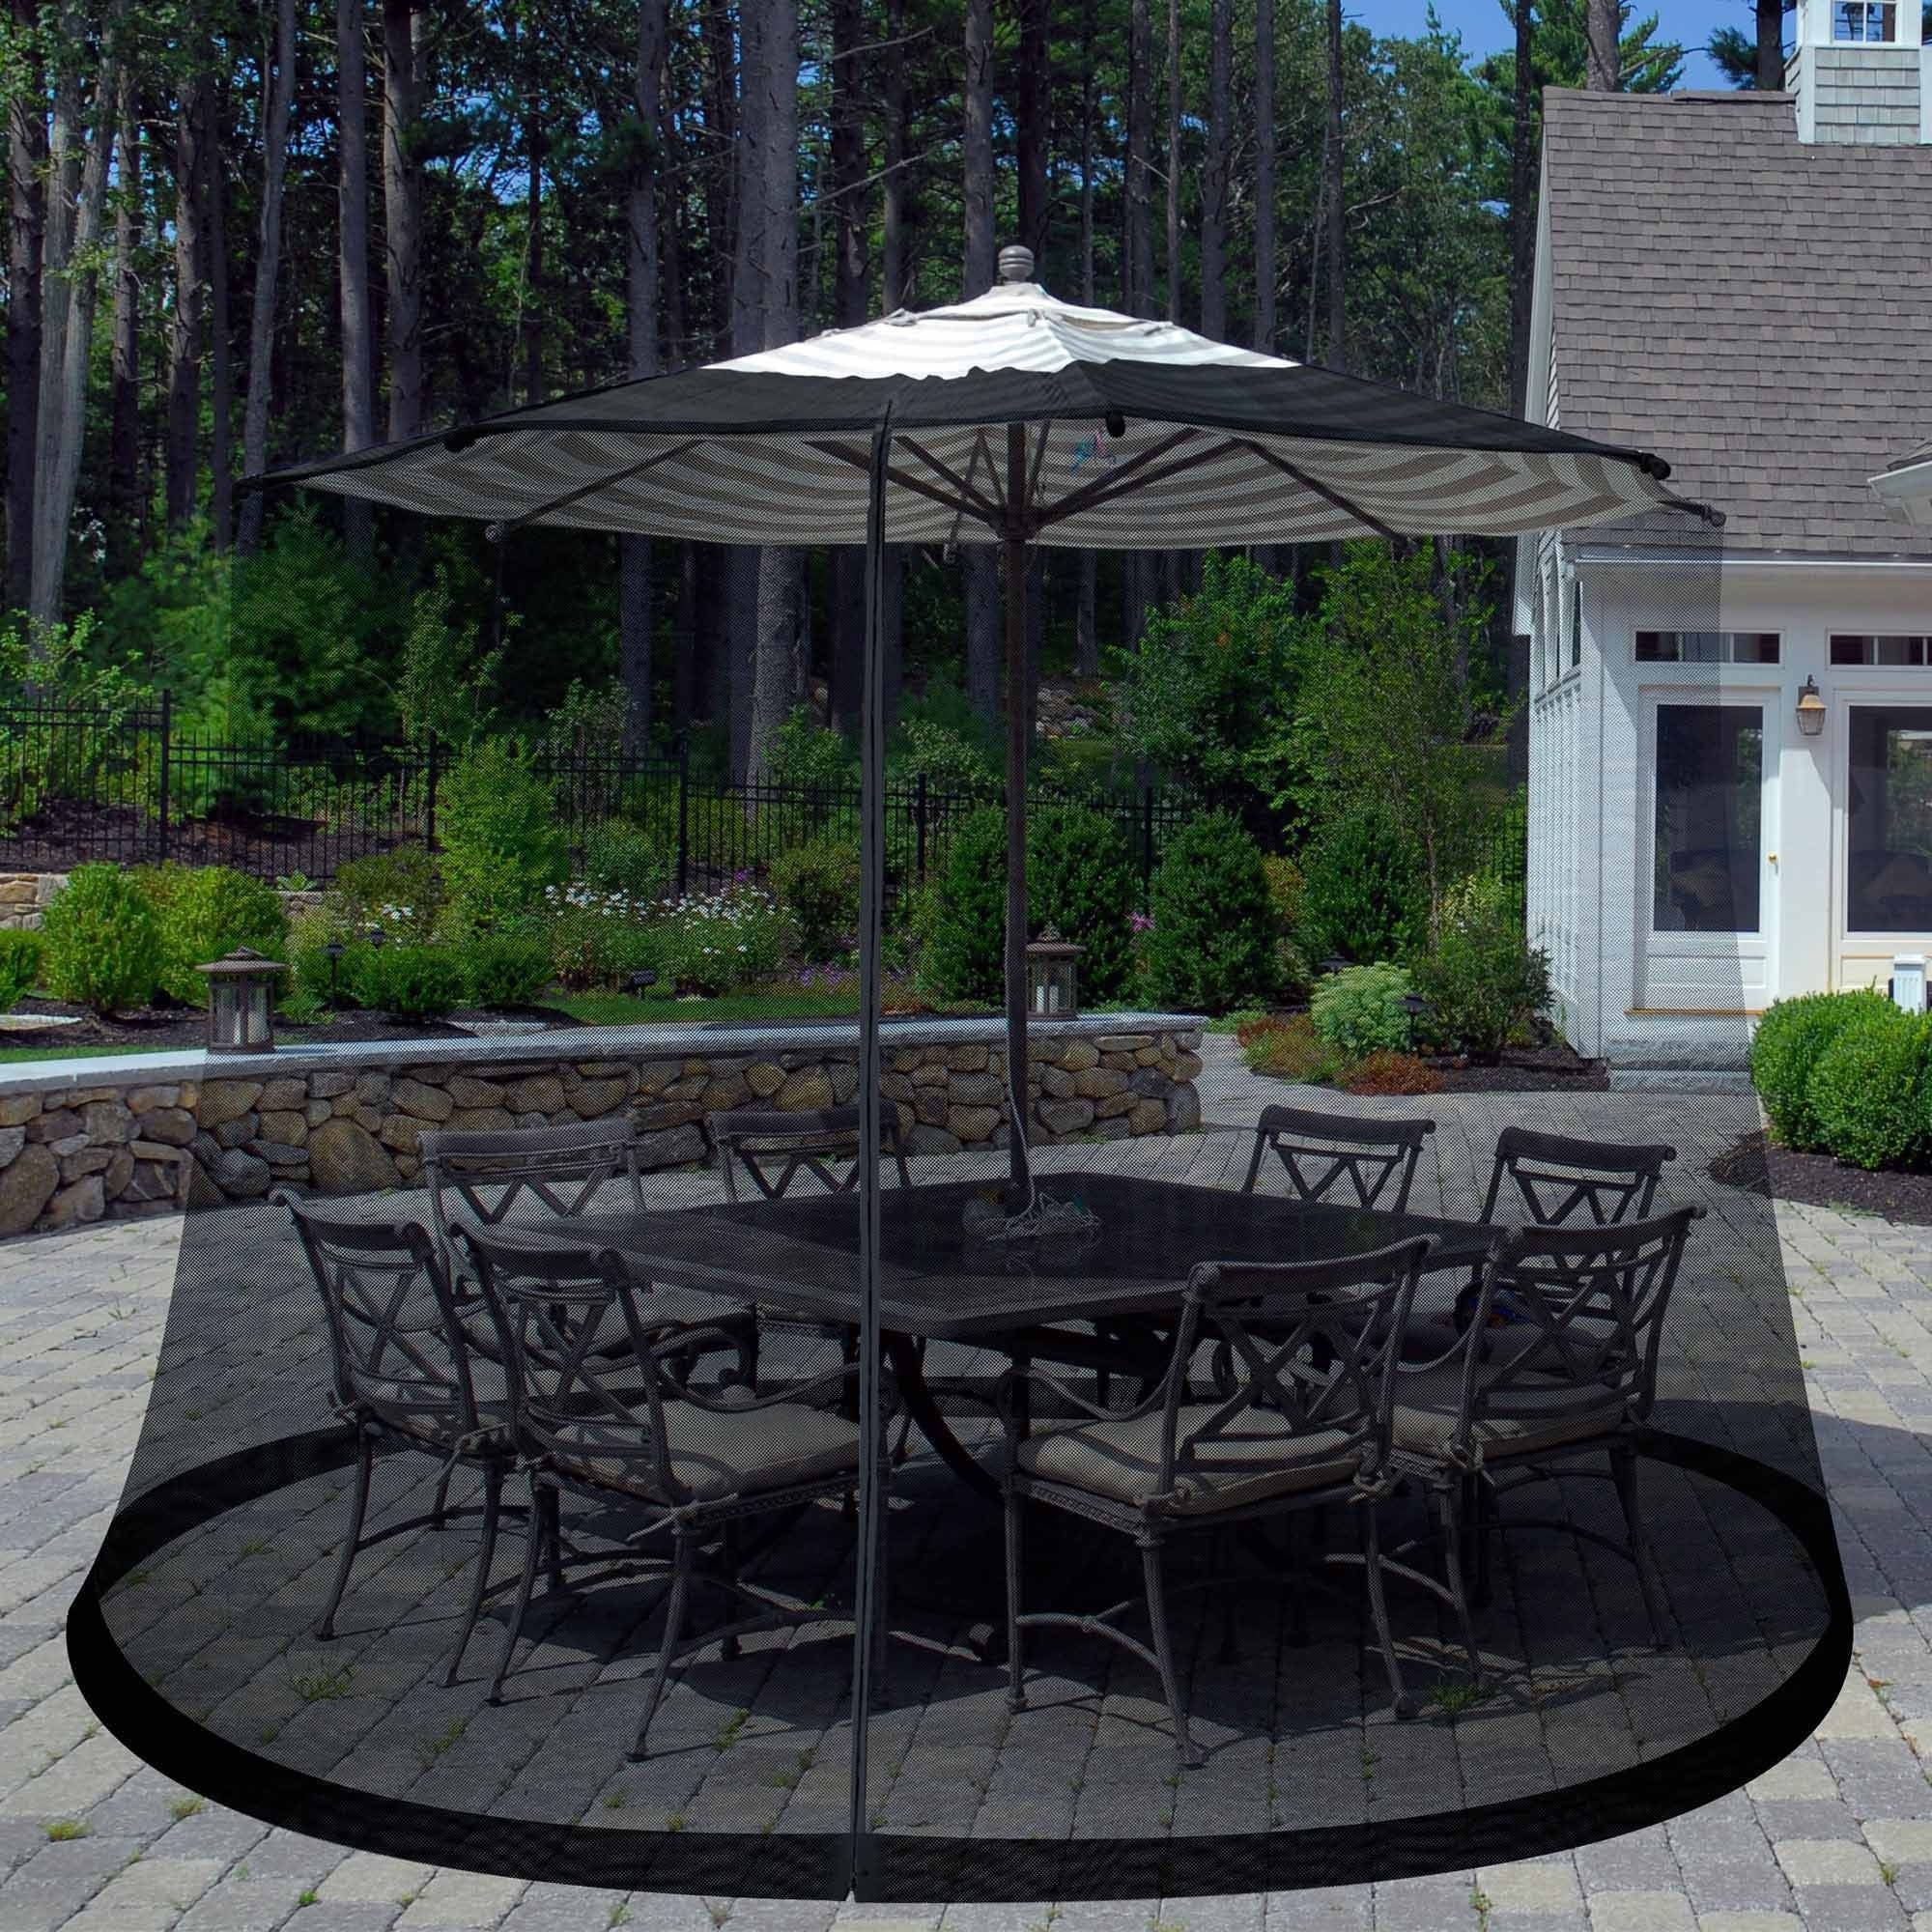 Widely Used Furniture: Costco Cantilever Umbrella For Most Dramatic Shade Throughout Costco Patio Umbrellas (View 13 of 20)